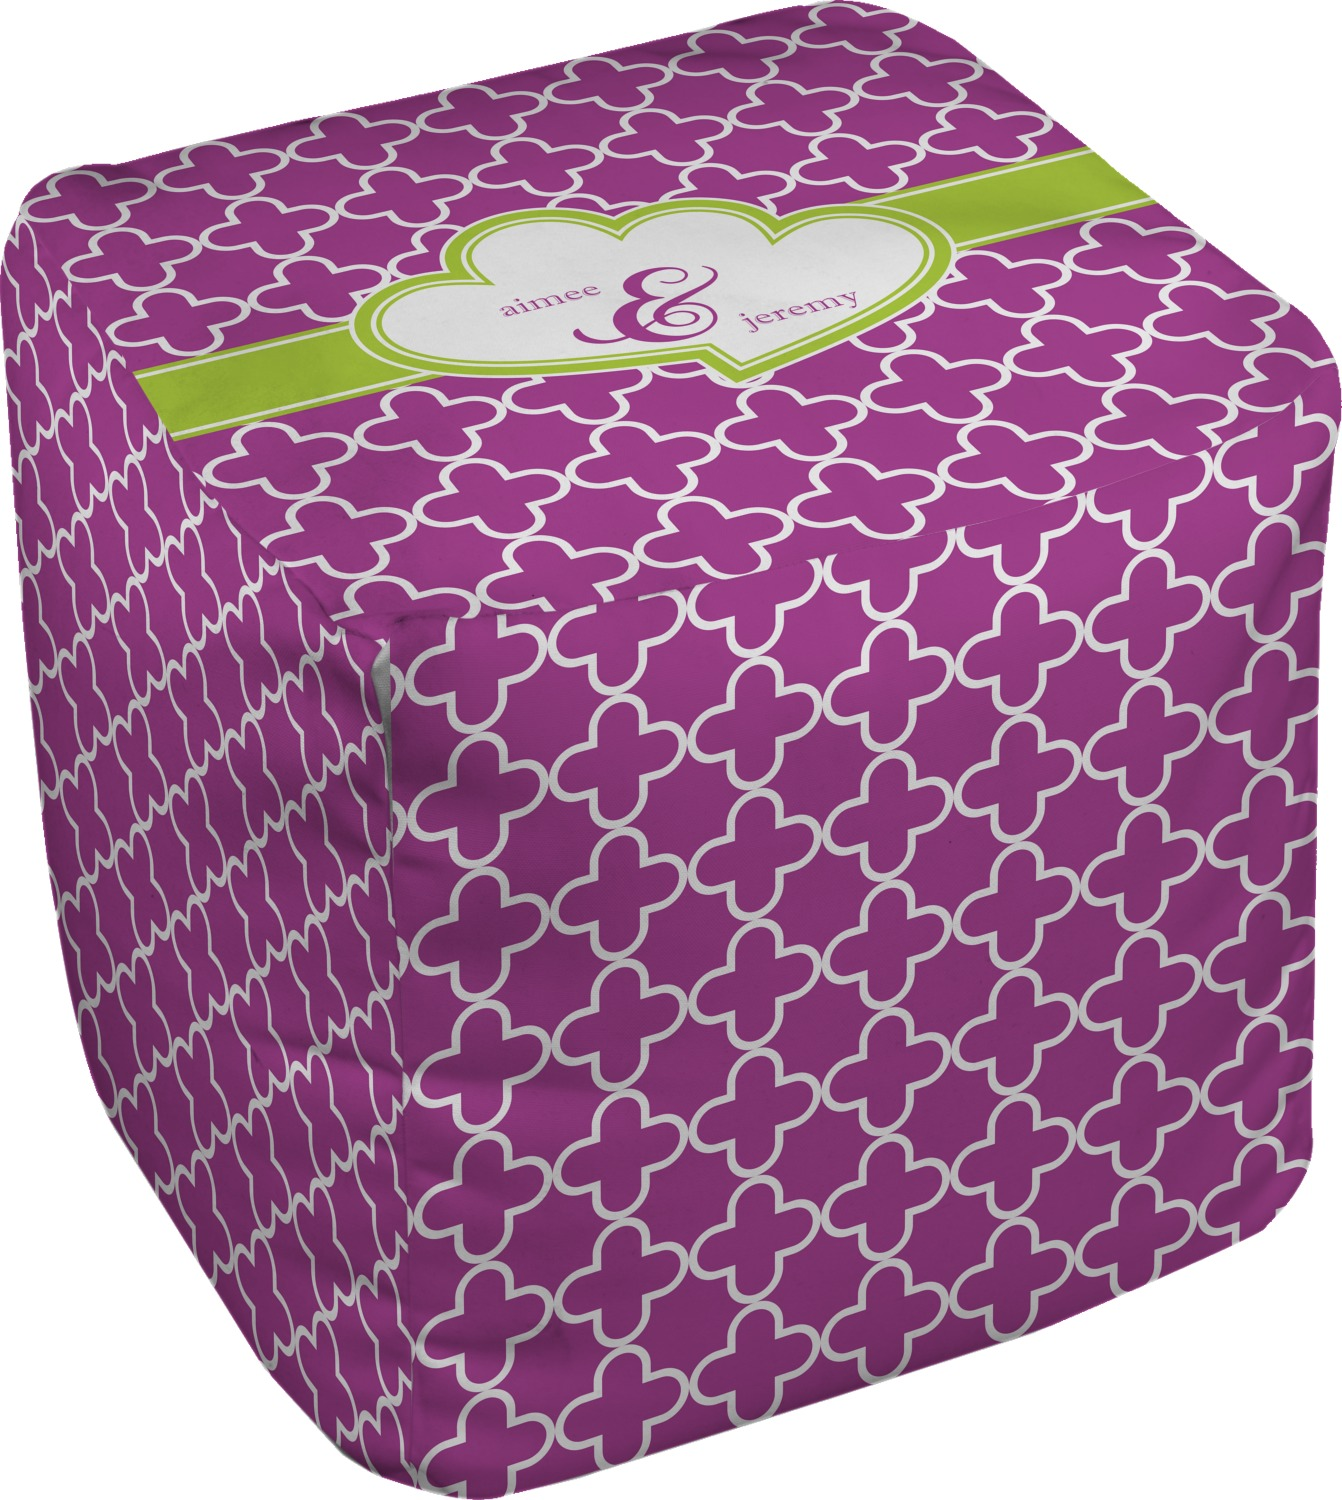 clover cube pouf ottoman personalized rnk shops. Black Bedroom Furniture Sets. Home Design Ideas